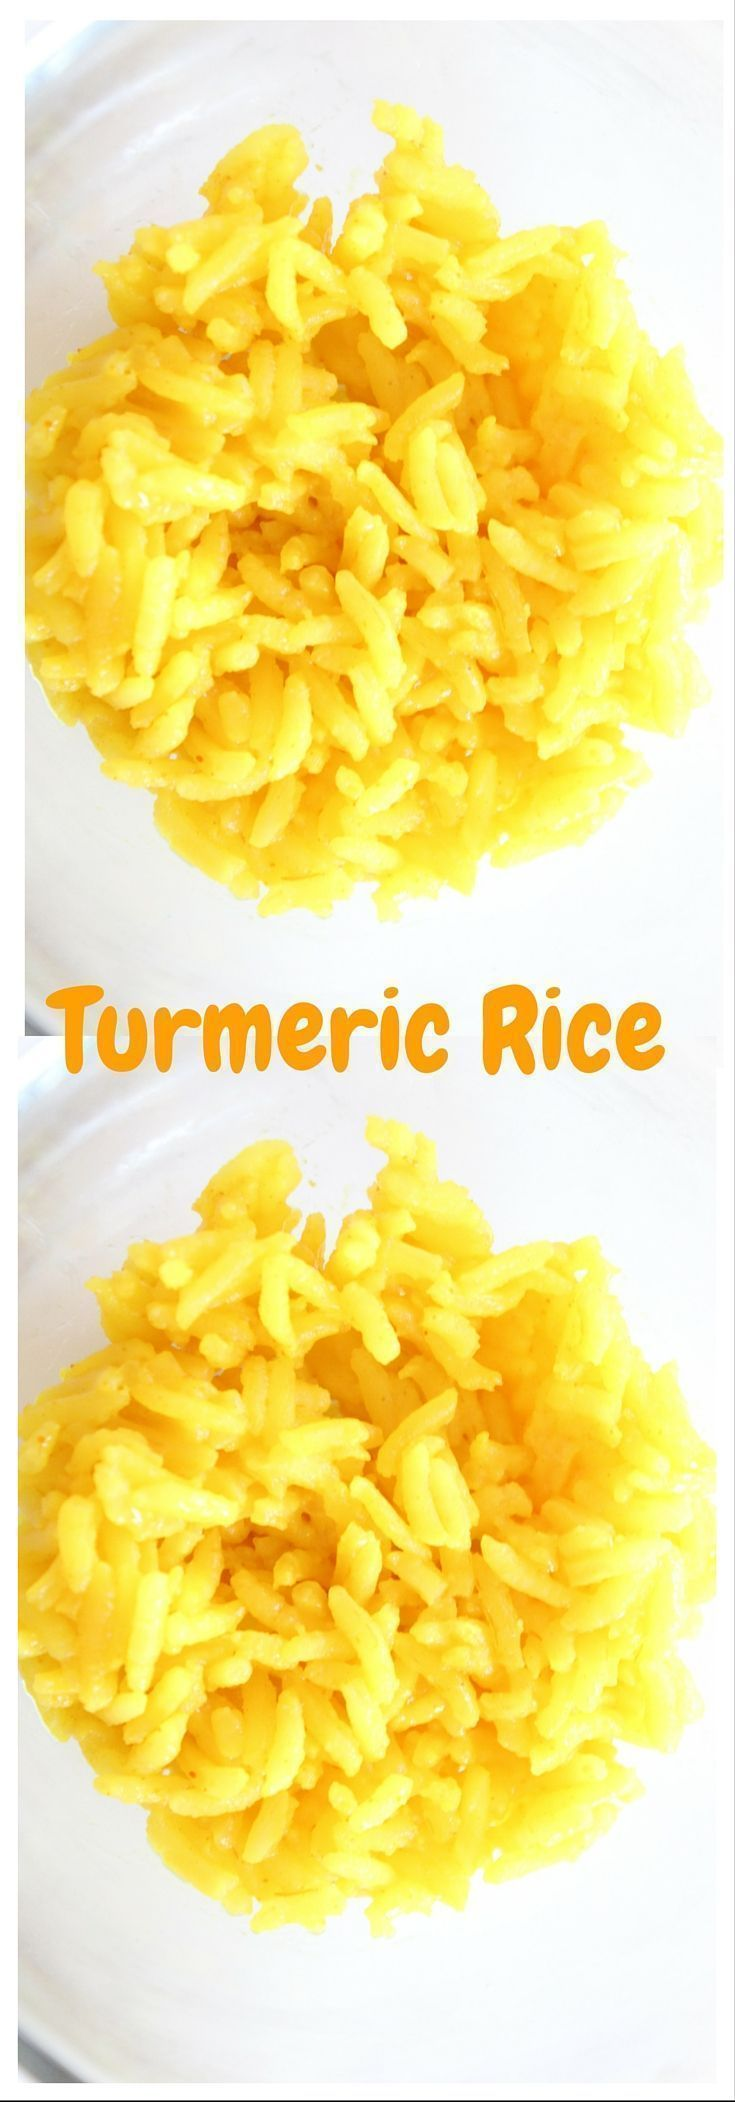 Spice up your rice with turmeric spice. Easy rice dish you can make anytime.  Click here for this recipe or pin to save for later.